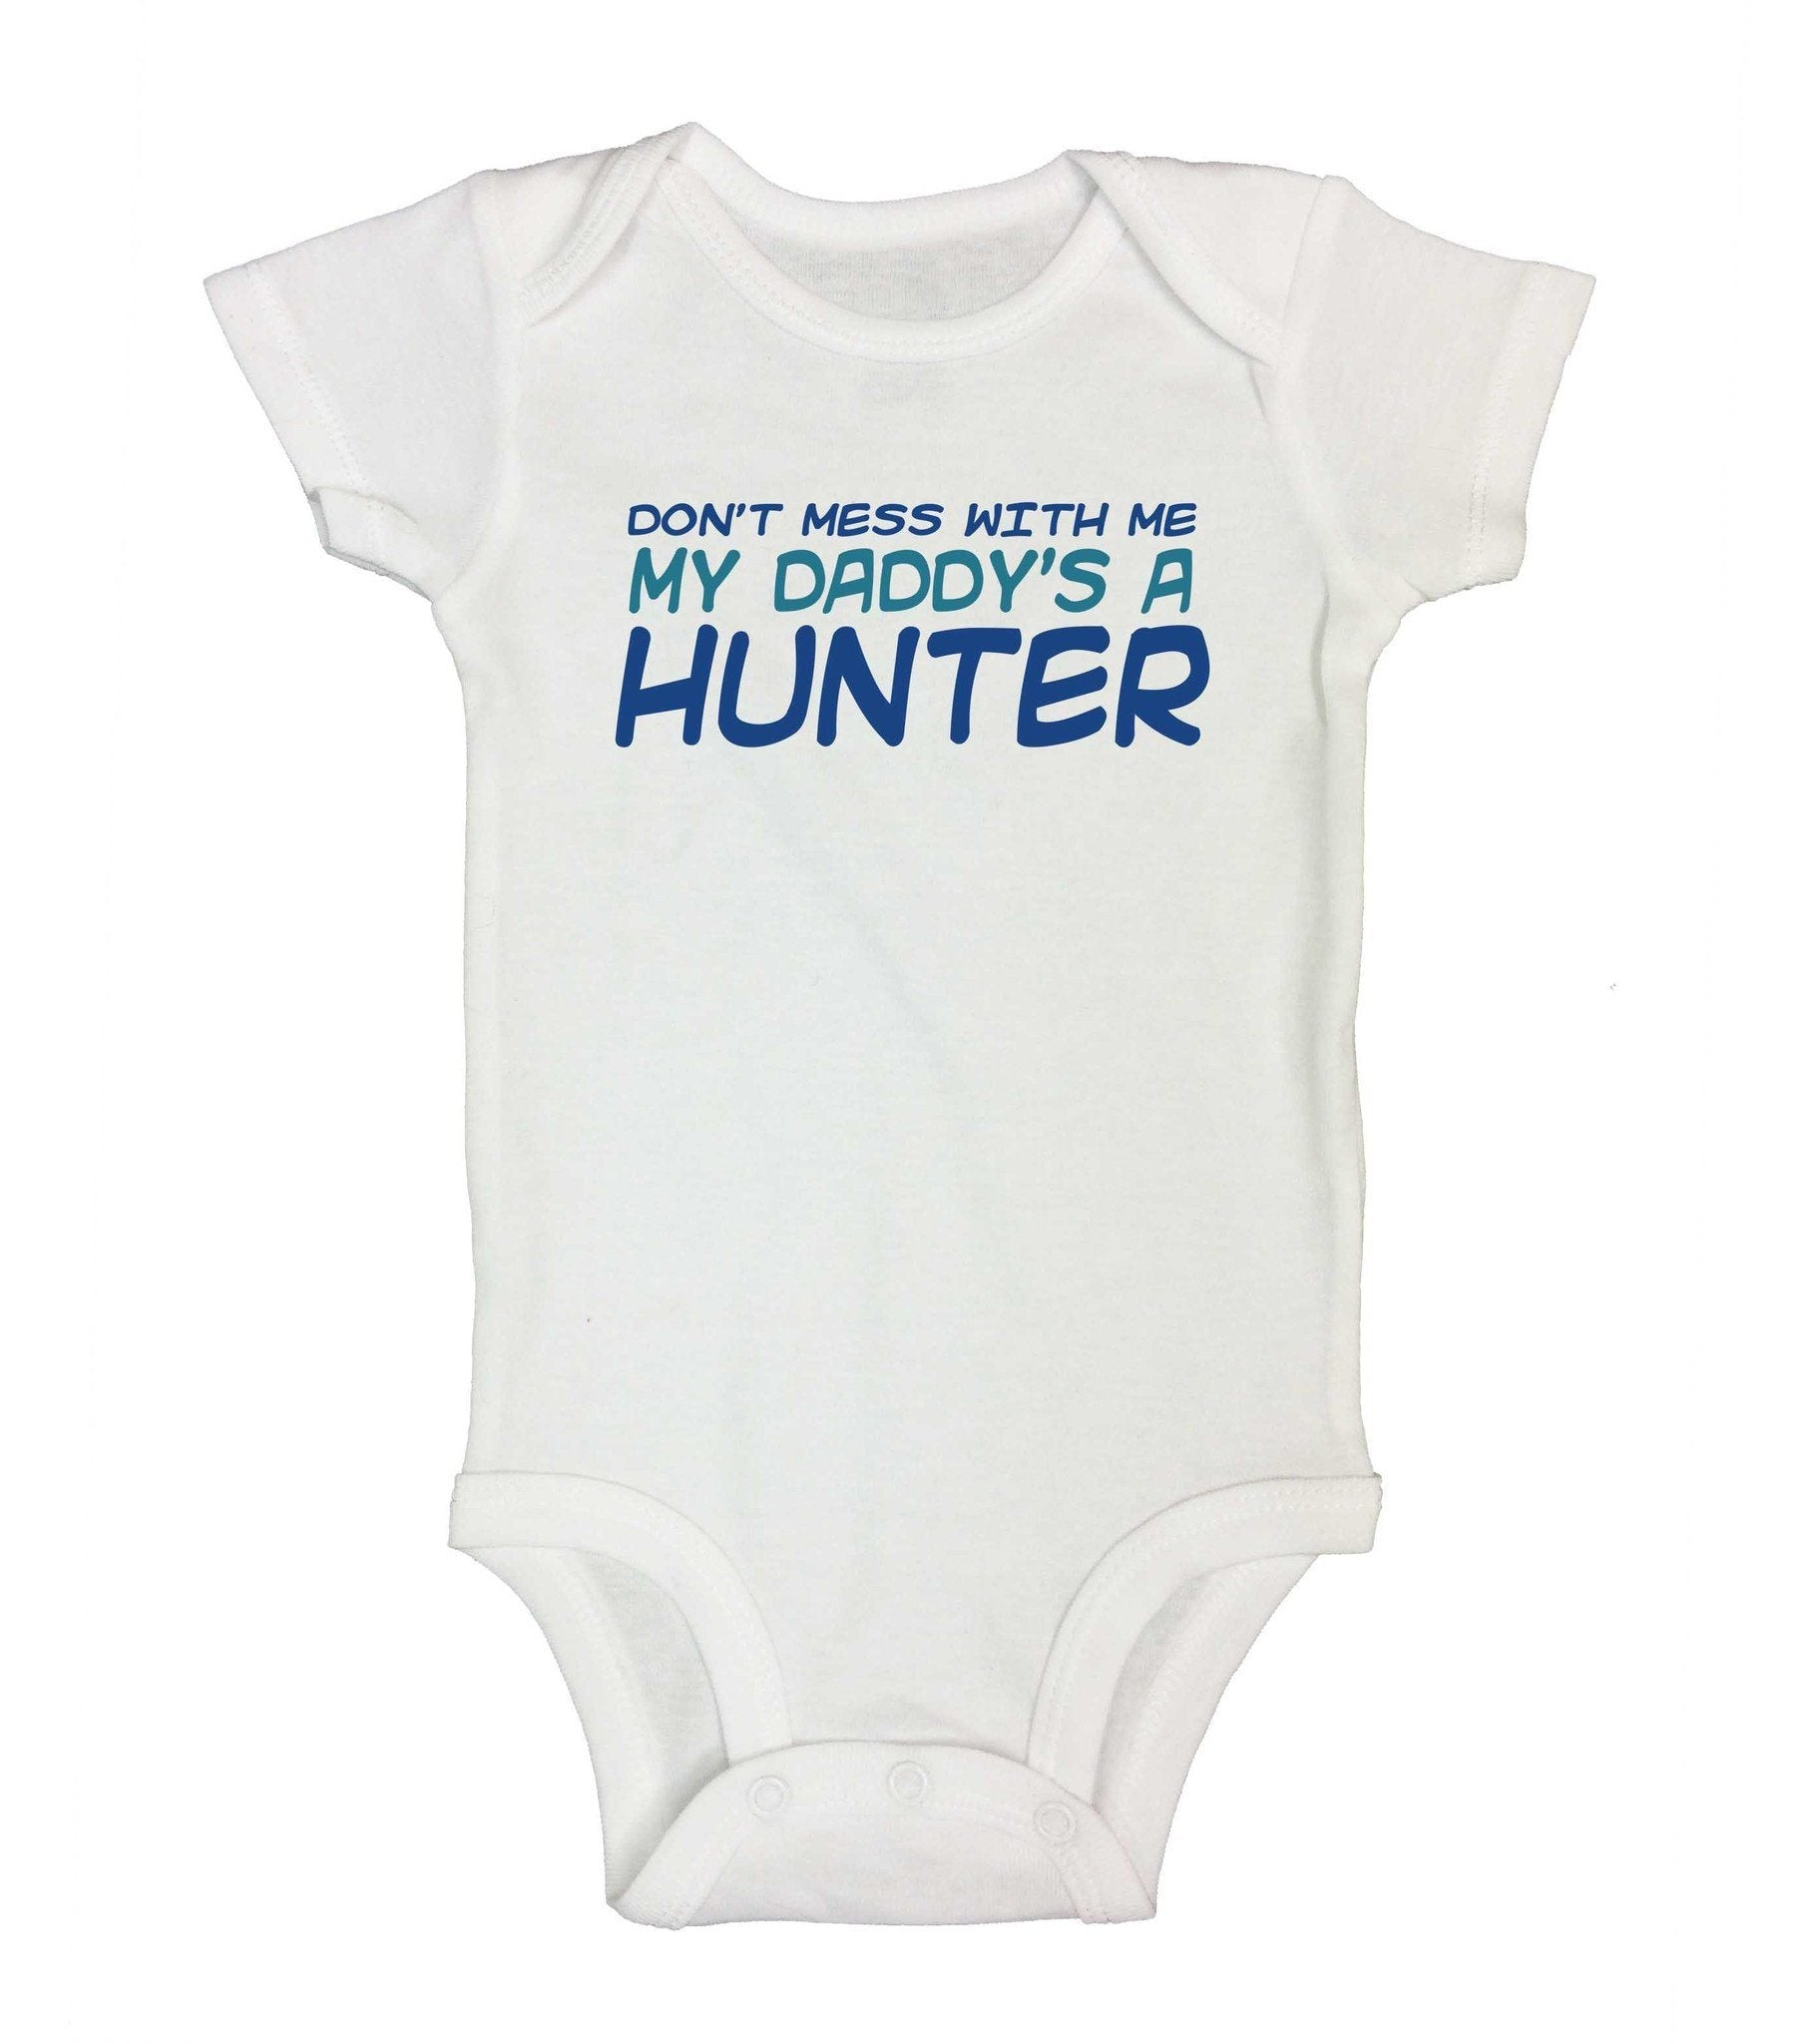 2f31858f Don't Mess With Me My Daddy's A Hunter Funny Kids Onesie